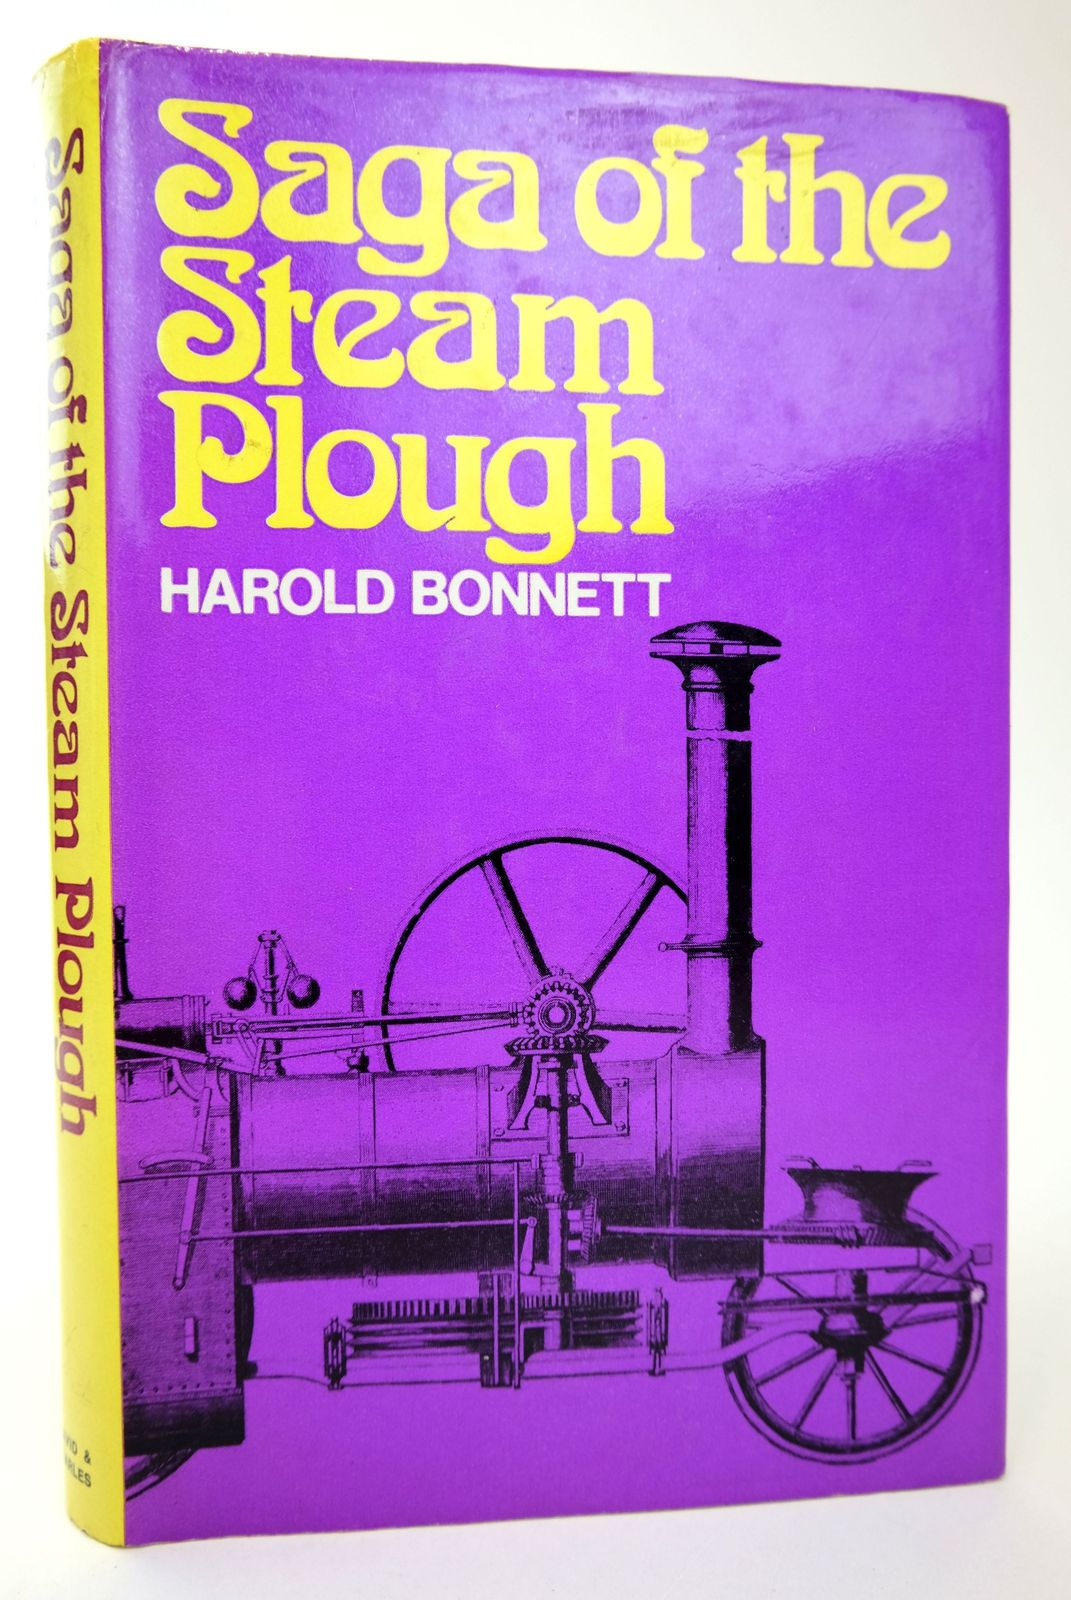 Photo of SAGA OF THE STEAM PLOUGH written by Bonnett, Harold published by David & Charles (STOCK CODE: 1818758)  for sale by Stella & Rose's Books